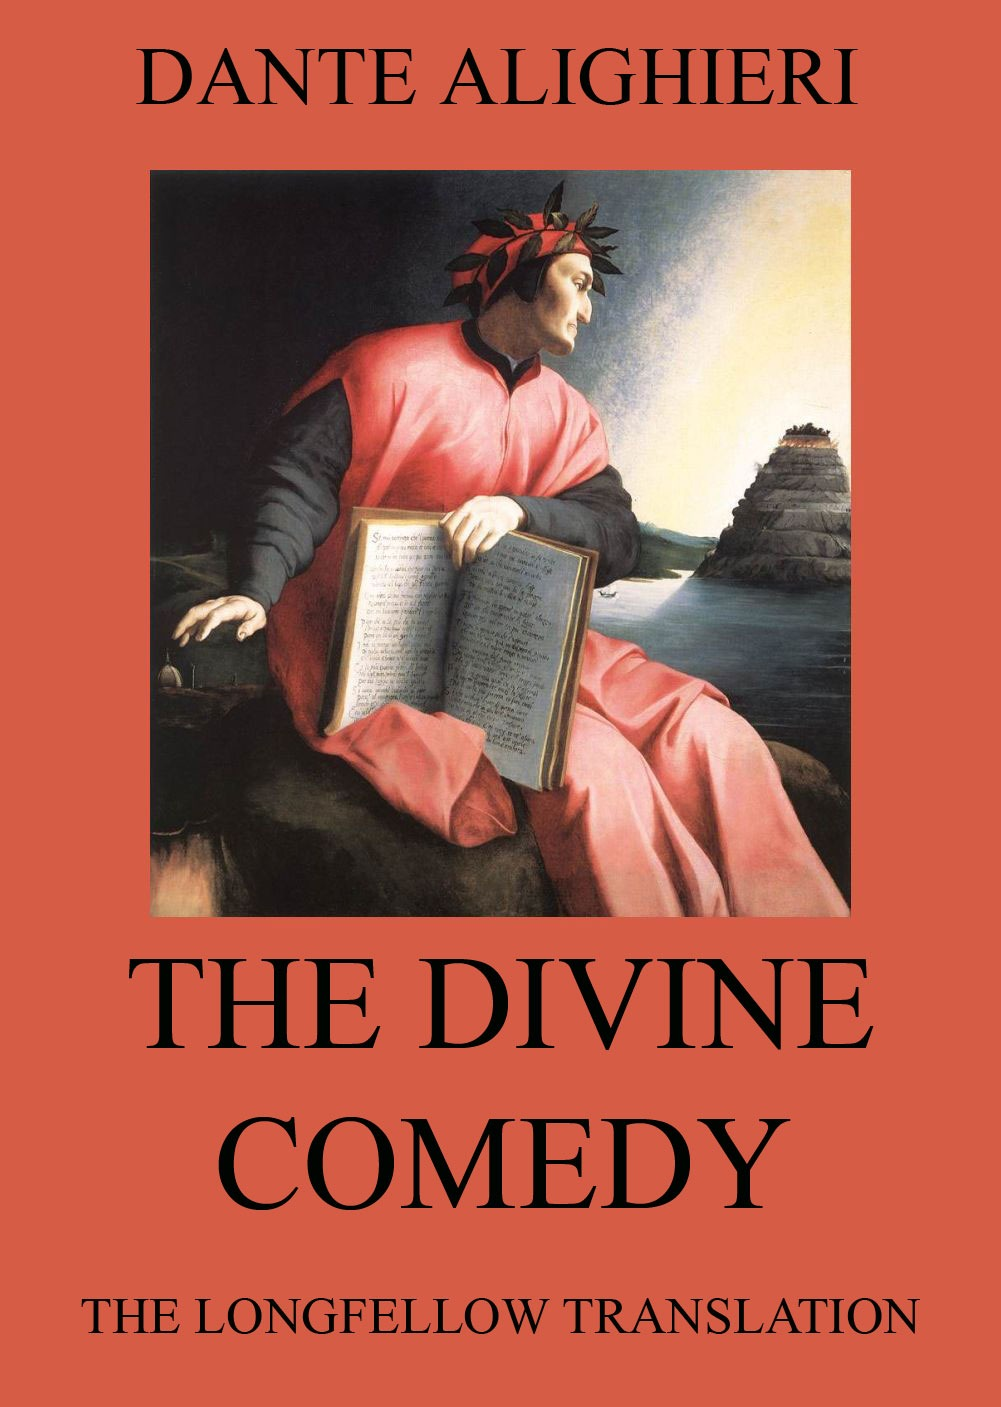 Данте Алигьери The Divine Comedy deathtraps – the postmodern comedy thriller